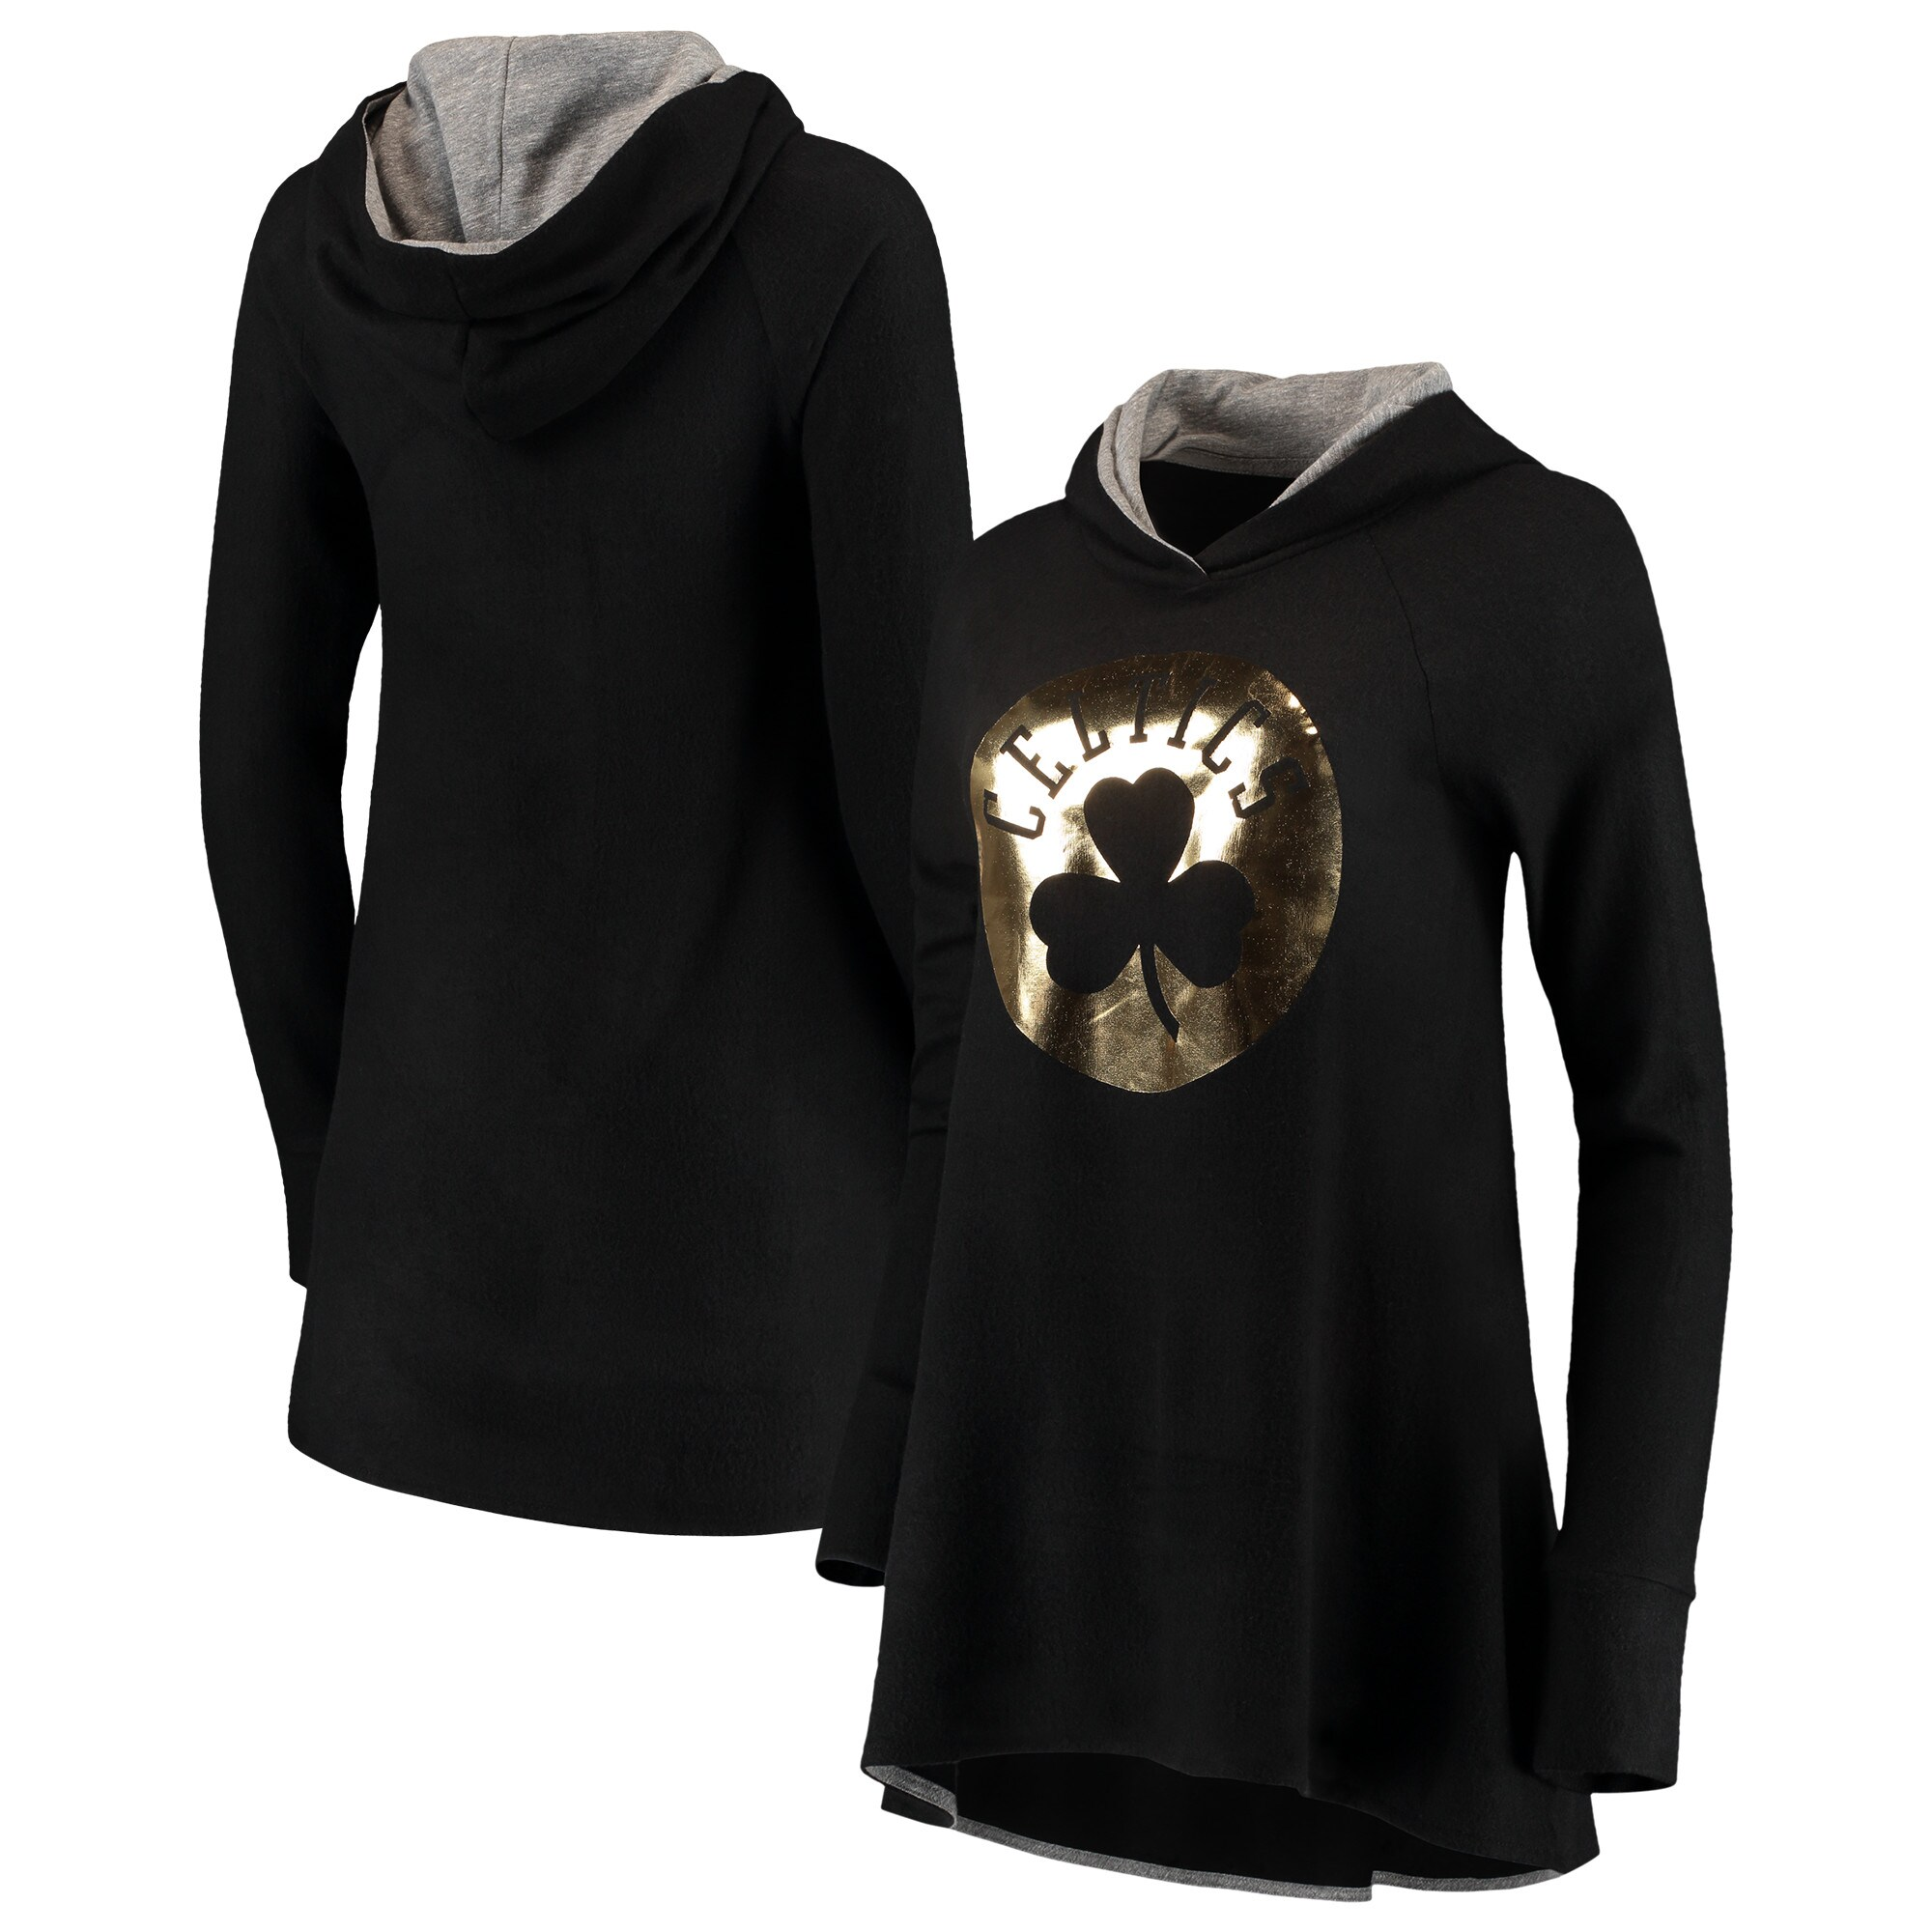 Boston Celtics Majestic Threads Women's Gold Foil Brushed Hacci A-Line Pullover Hoodie - Black